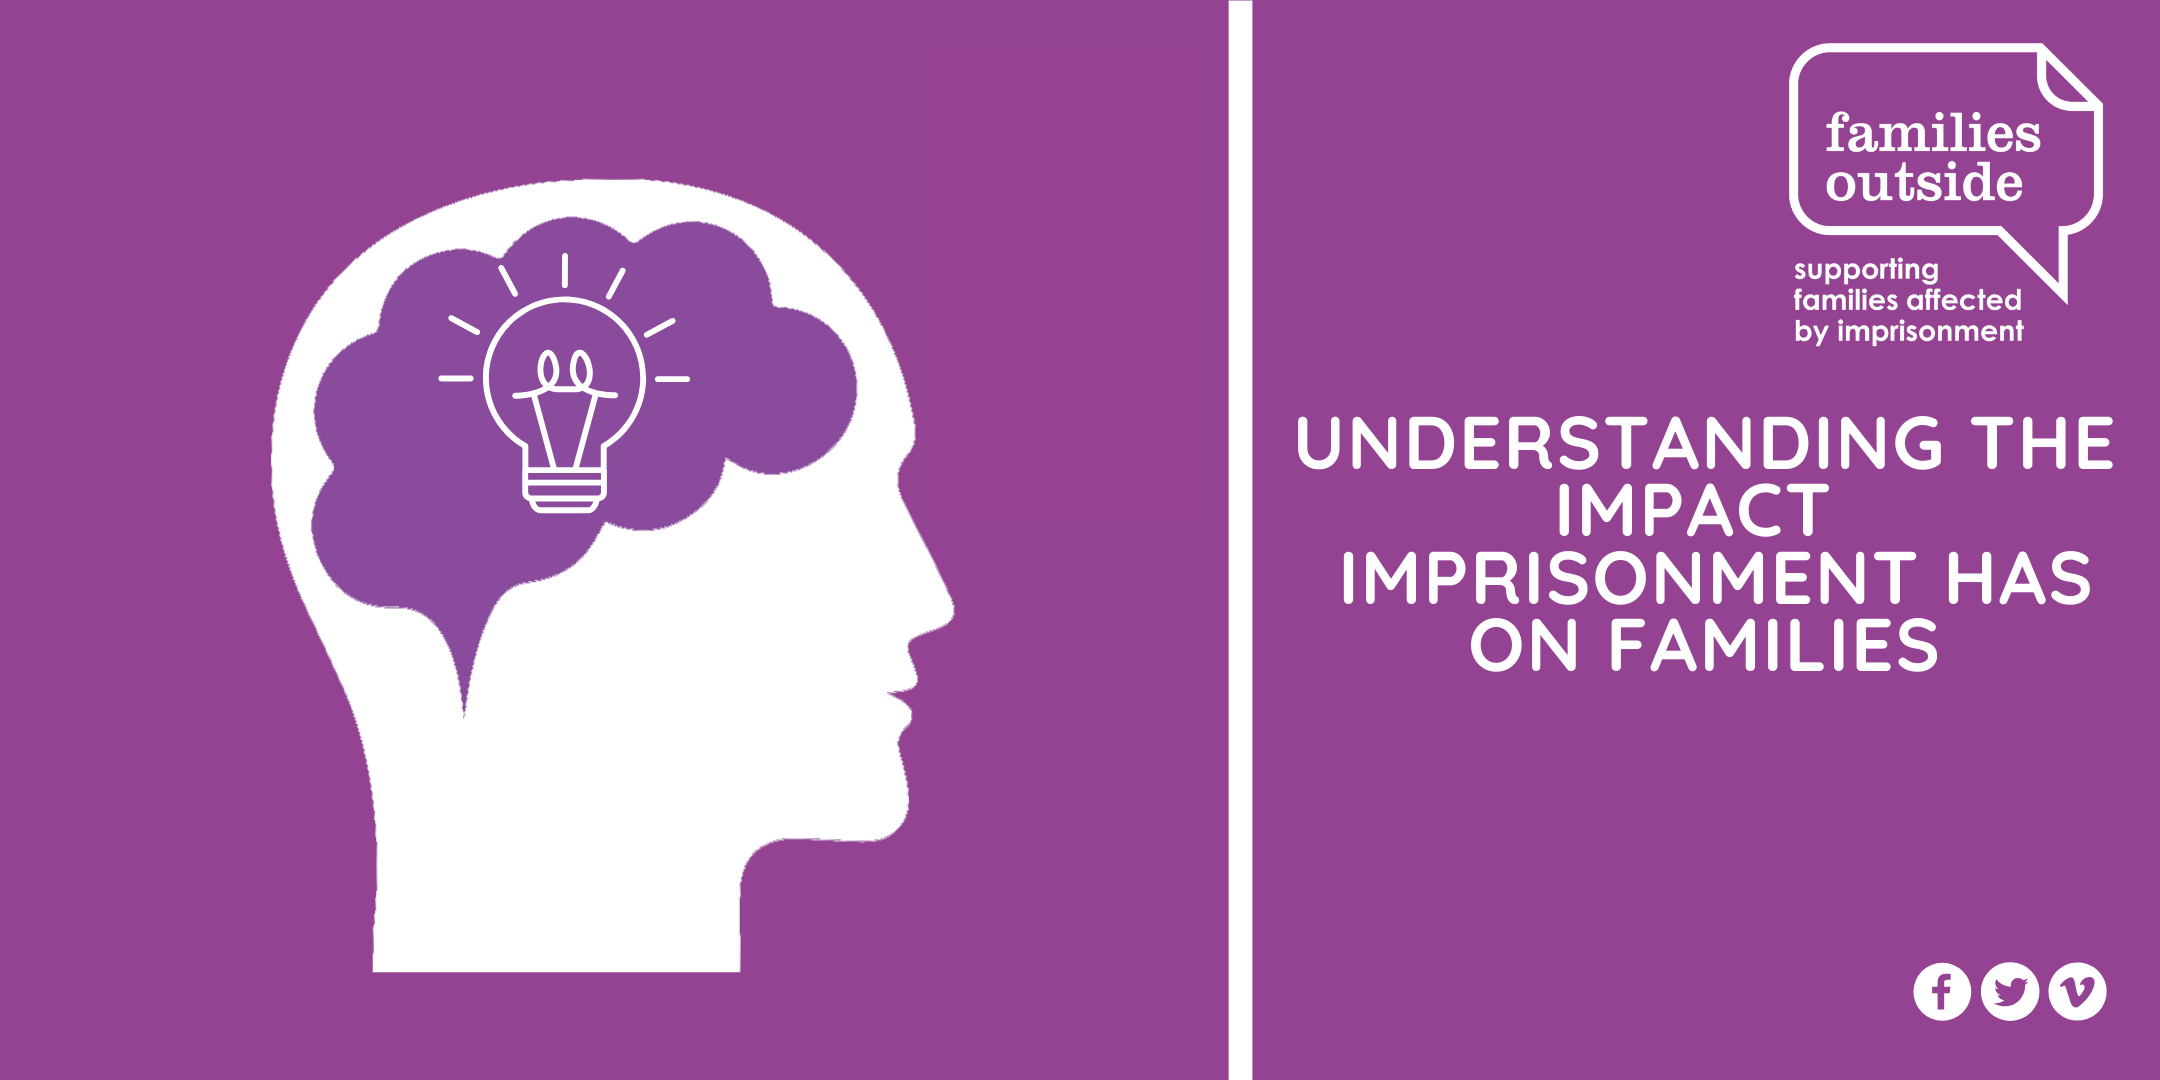 Understanding the impact imprisonment has on families - September